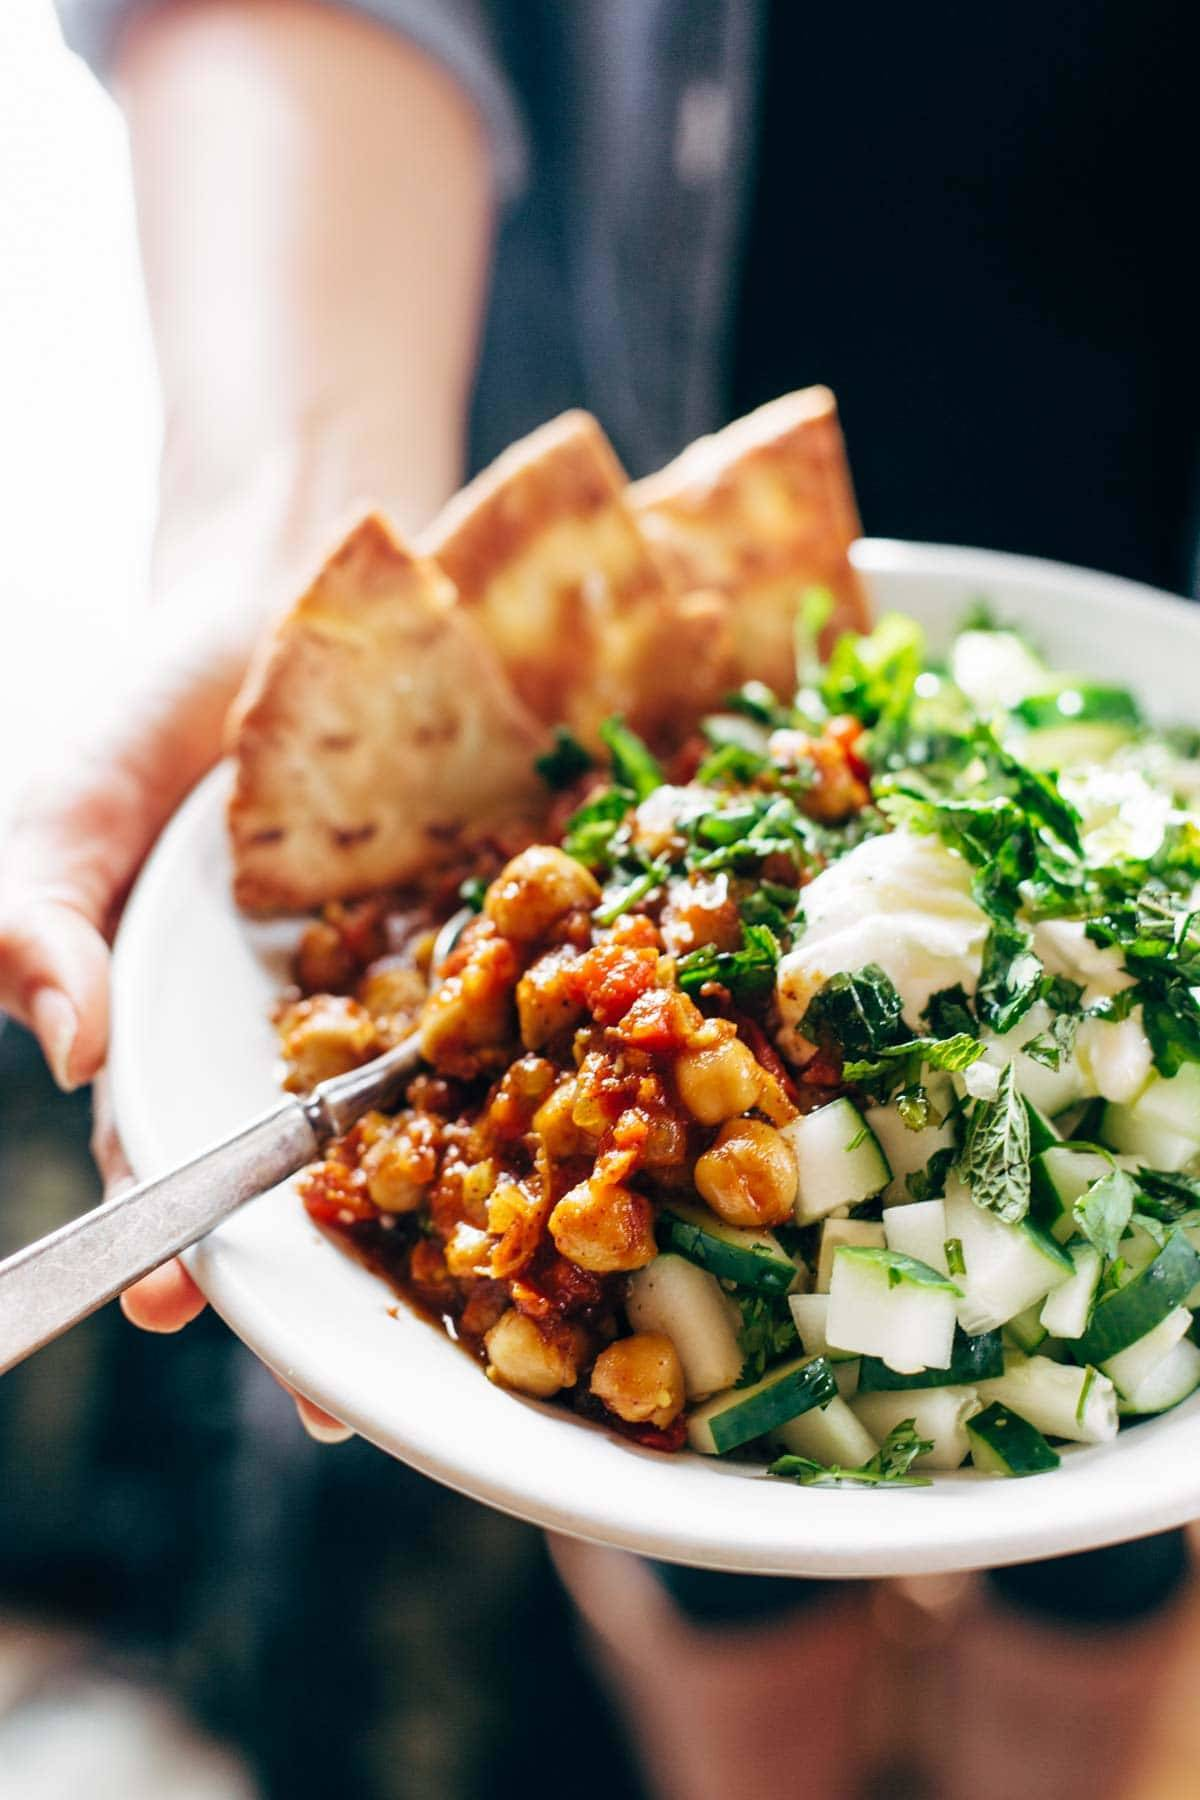 Detox Moroccan Chickpea Glow Bowl: clean eating meets comfort food! vegetarian / vegan. | pinchofyum.com